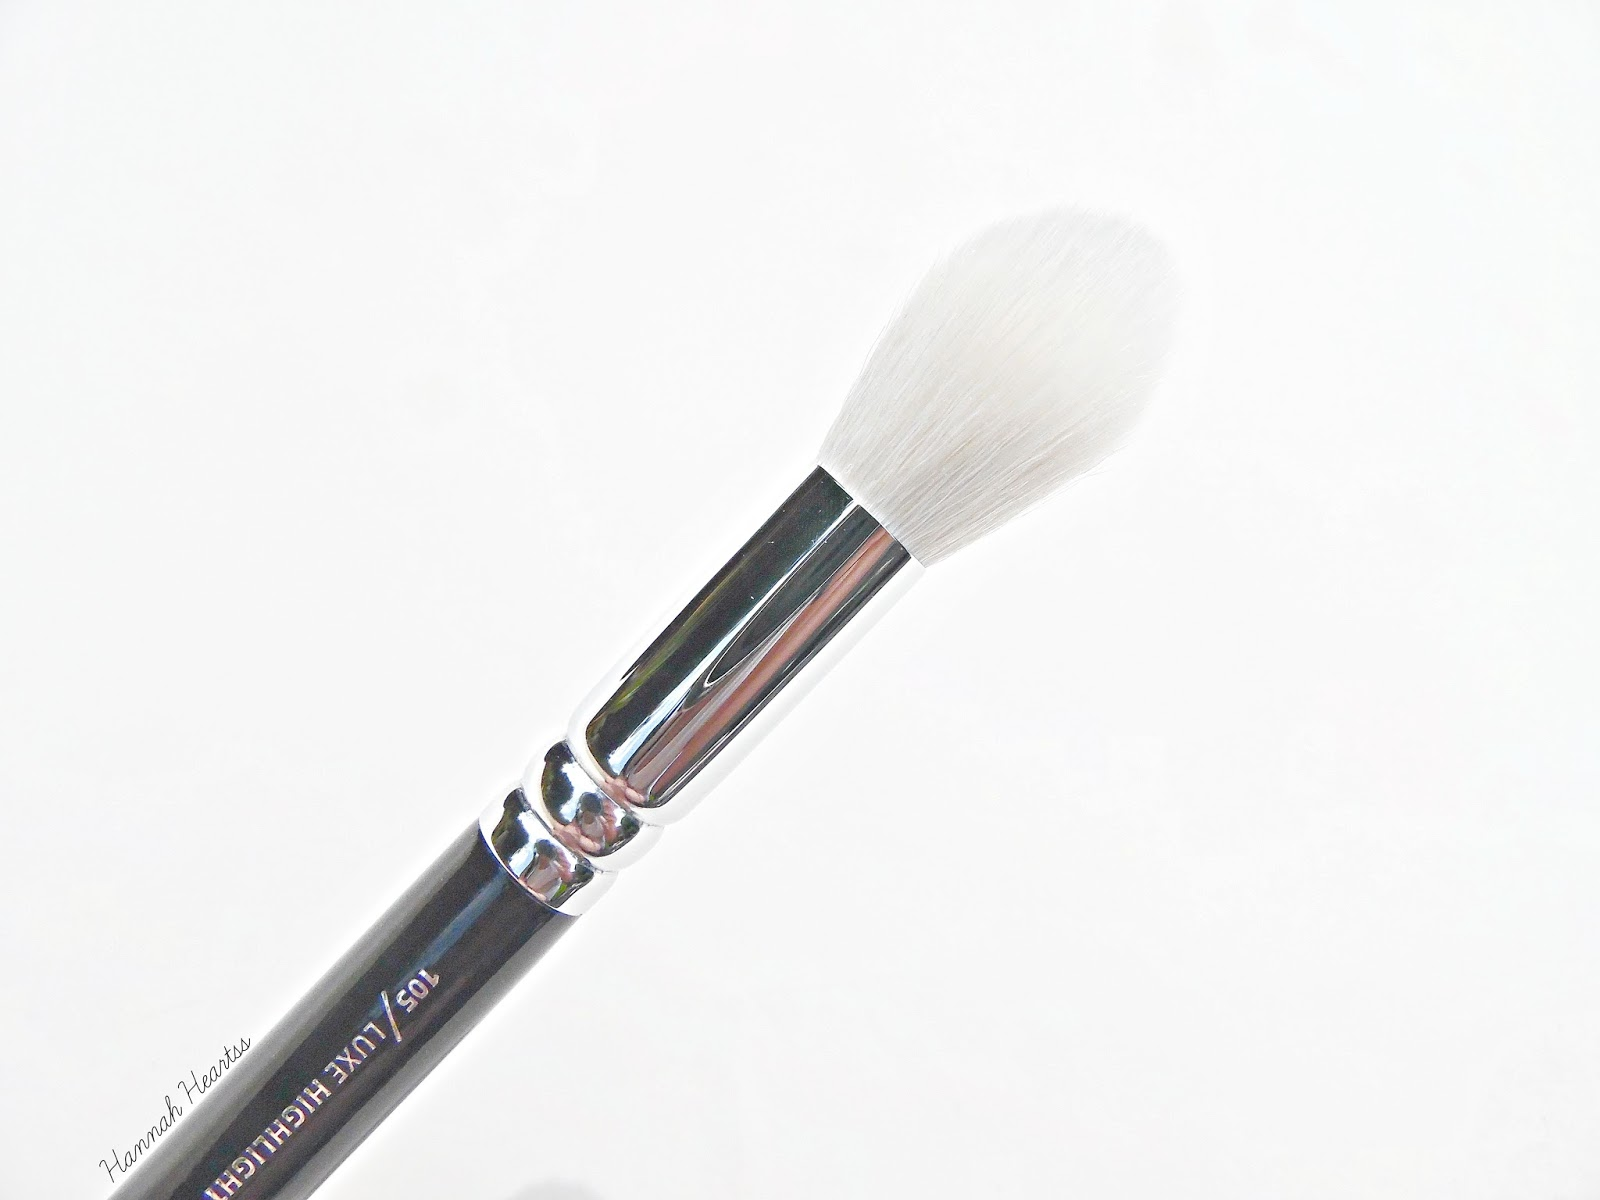 Zoeva 105 Luxe Highlight Brush Review